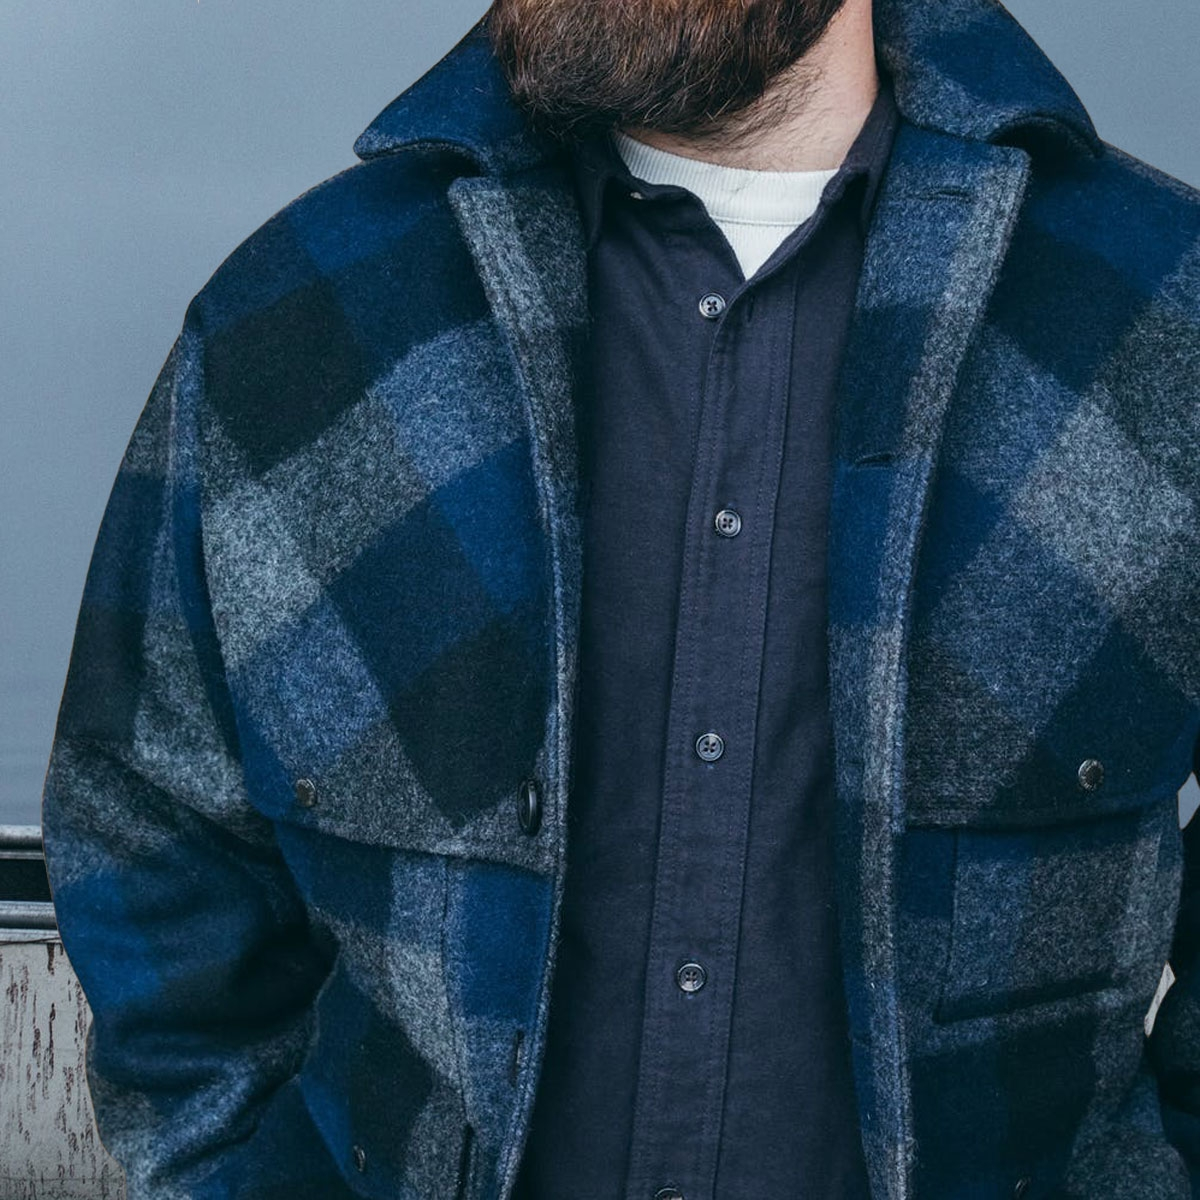 Filson Double Mackinaw Cruiser Charcoal/Black/Navy, A wool coat with double-layer protection and over 100 years of proven reliability